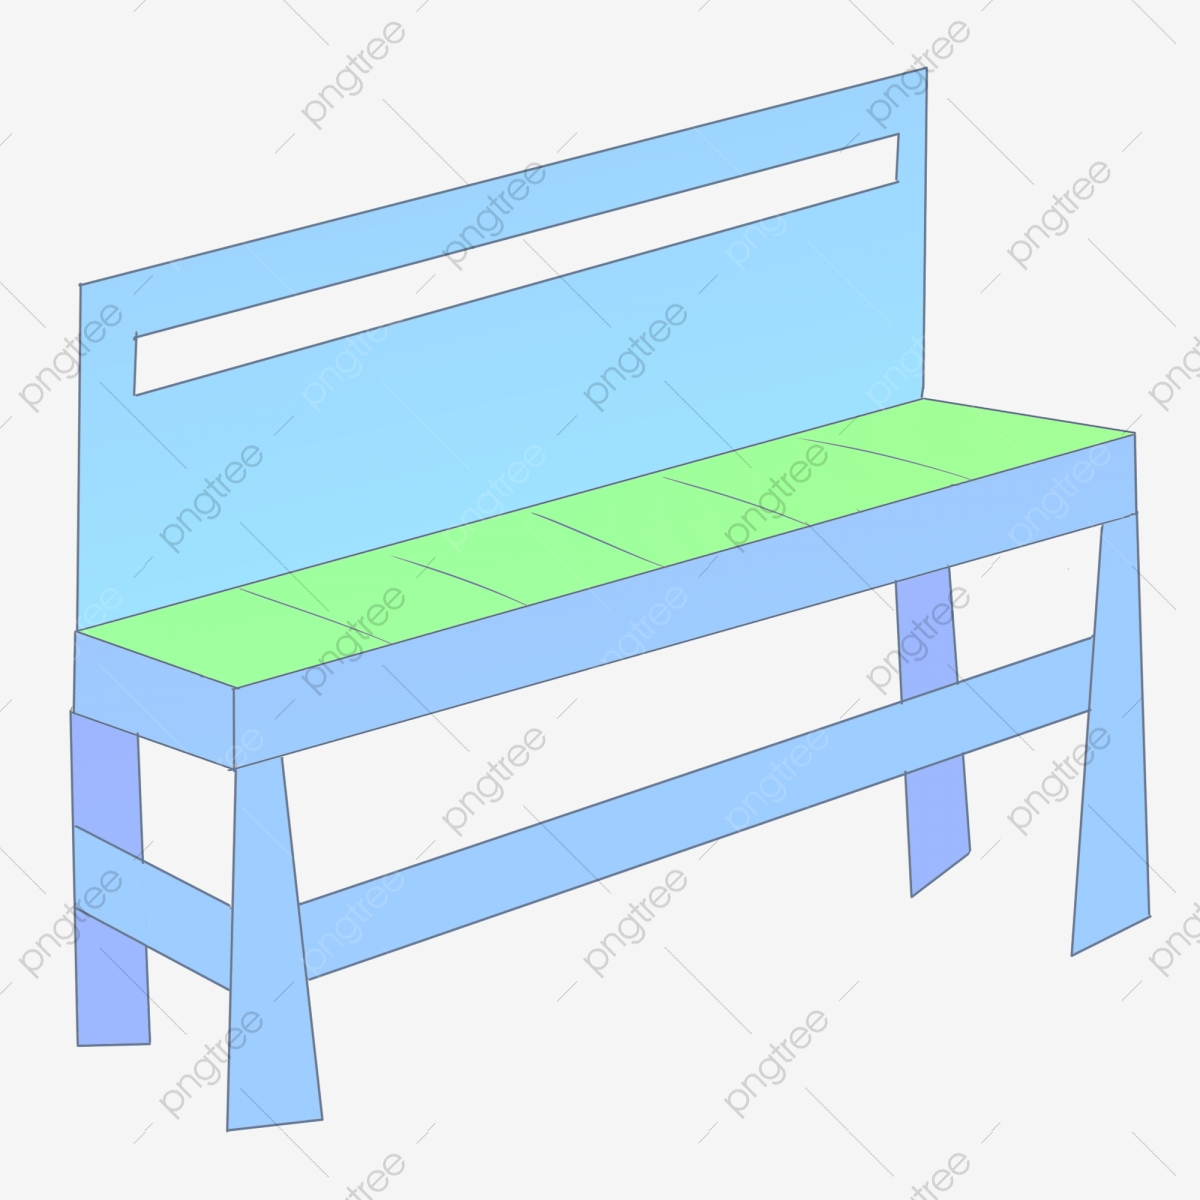 Blue Long Chair Cartoon Illustration Blue Chair Long Chair Wooden Chair Png Transparent Clipart Image And Psd File For Free Download